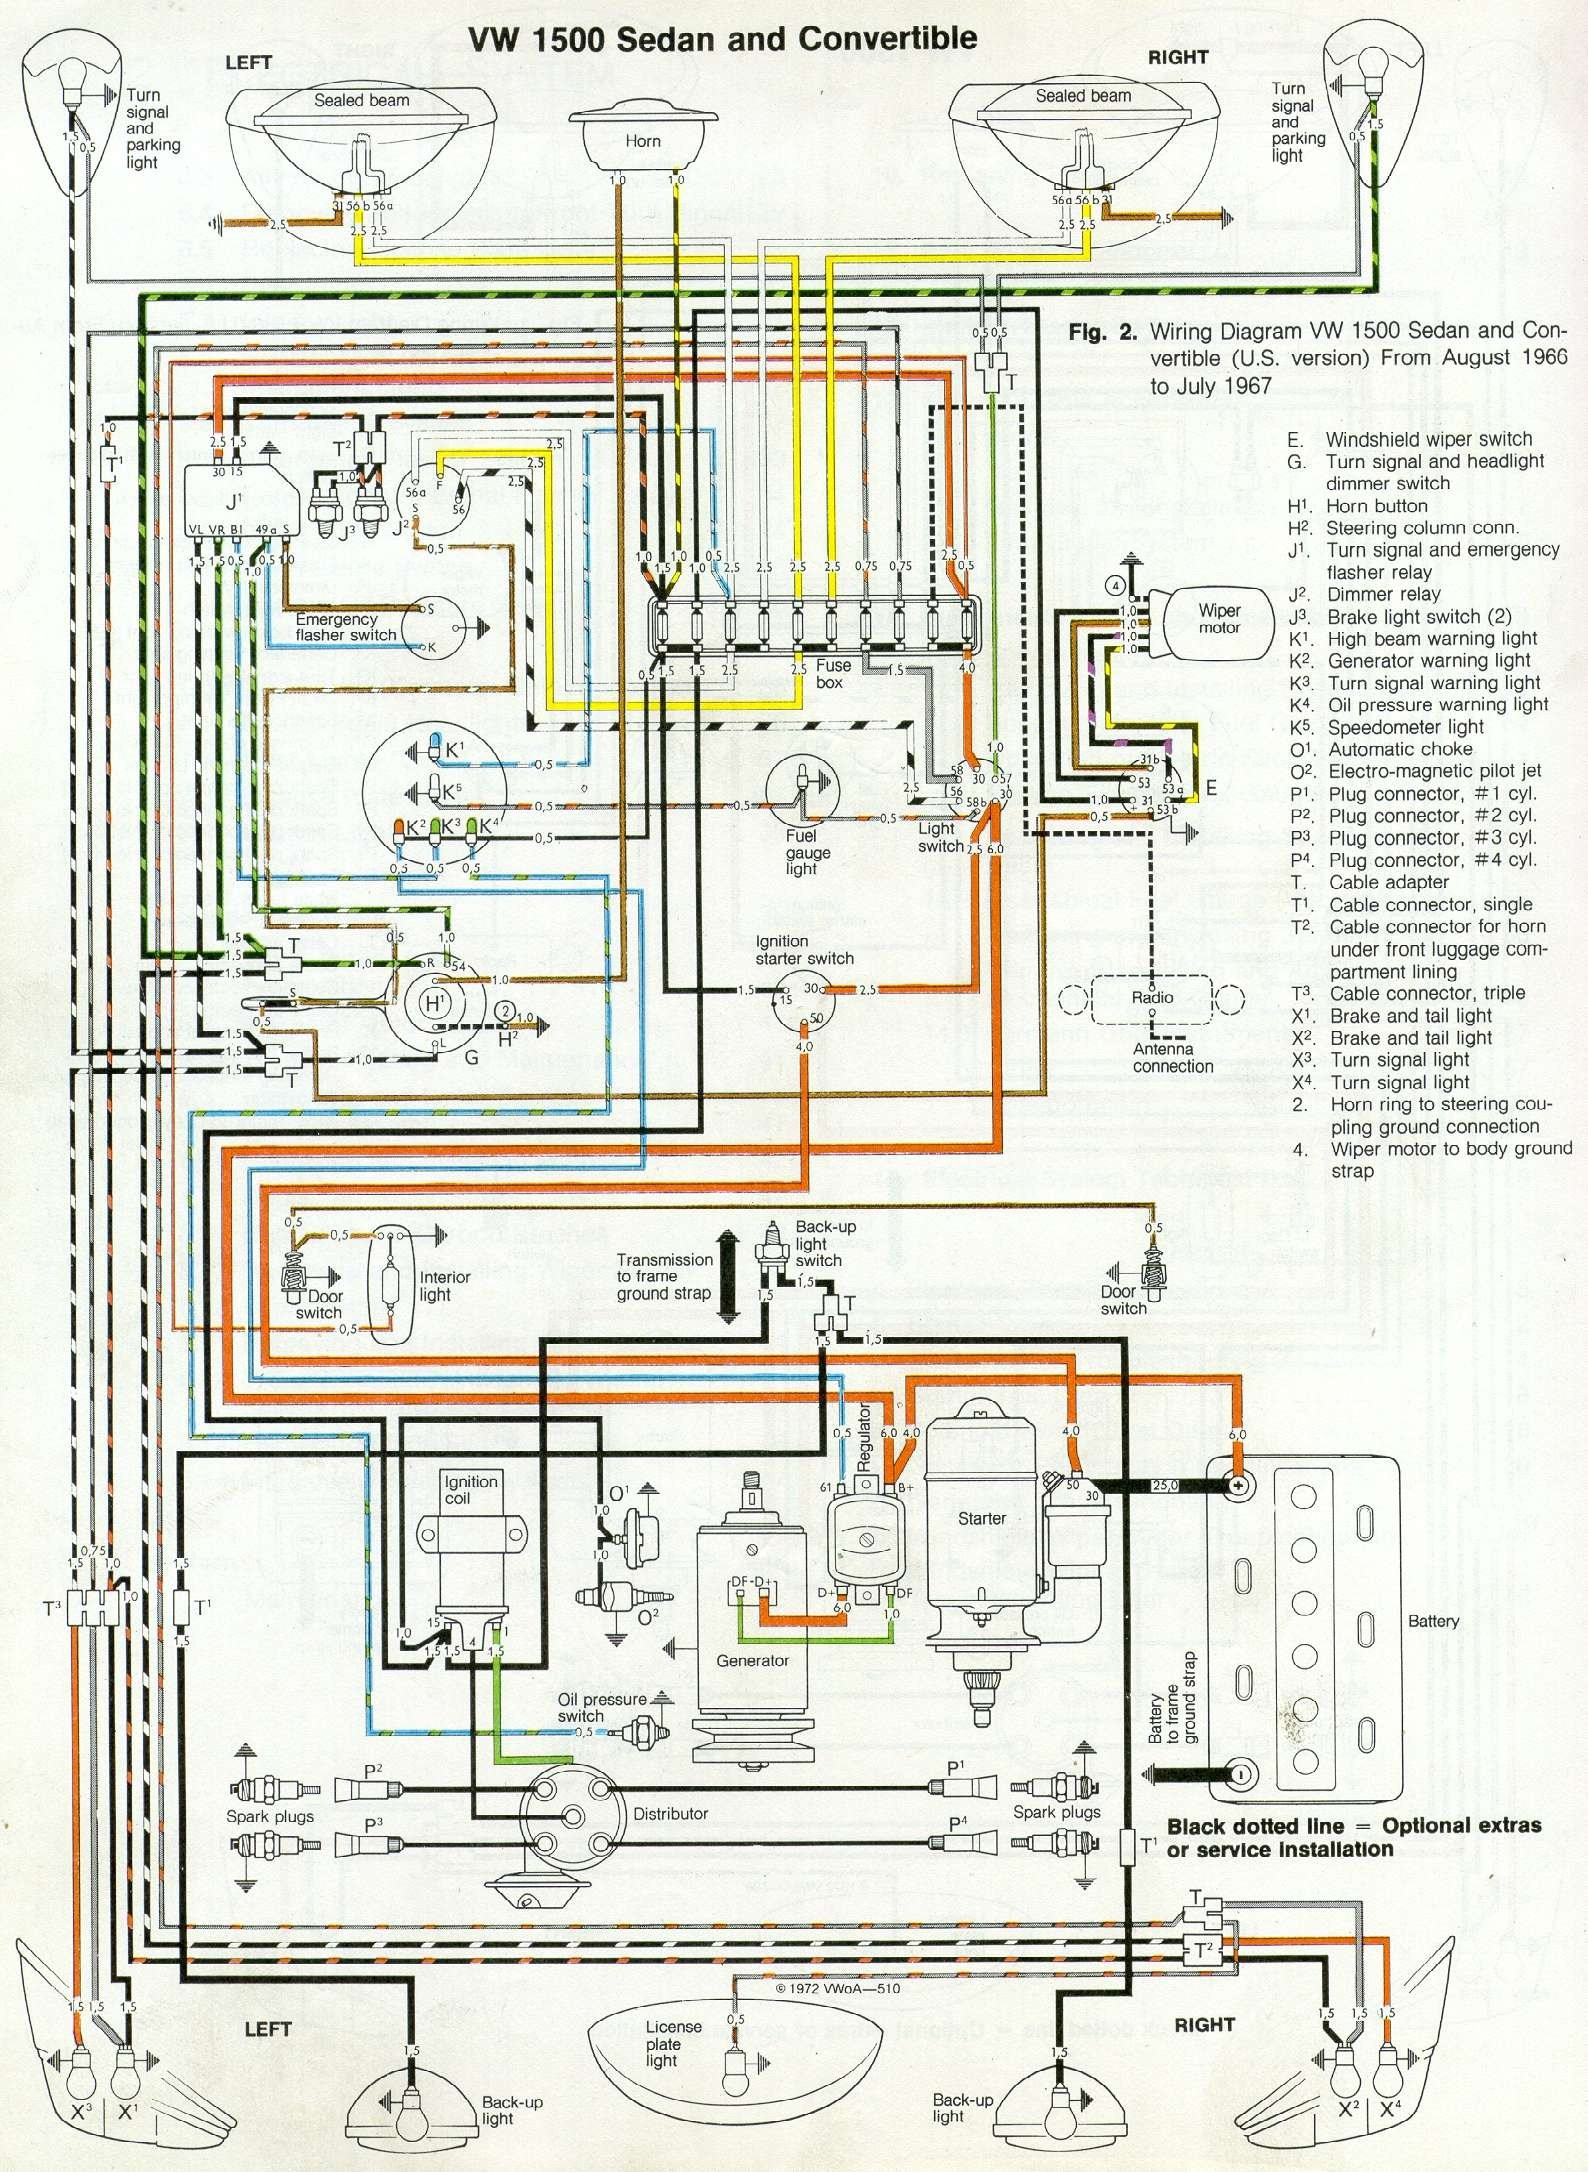 VW Beetle Wiring Digram 67 beetle wiring diagram u s version 1967 vw beetle vw wiring diagrams at couponss.co